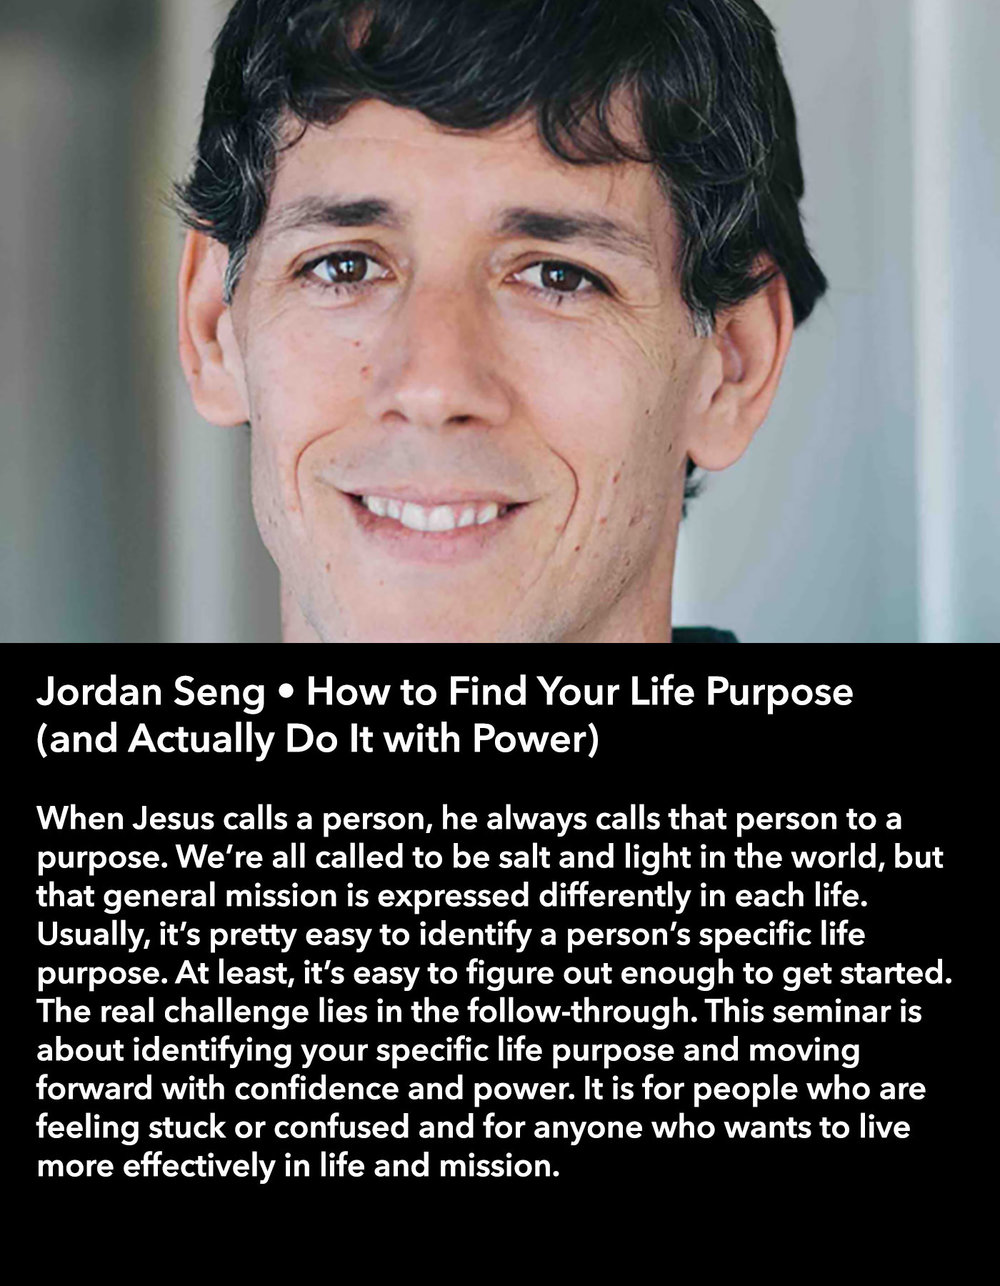 Jordan Seng • How to Find Your Life Purpose (and Actually Do It with Power) • Saturday Morning, March 18 • 10:30 – 11:45 am